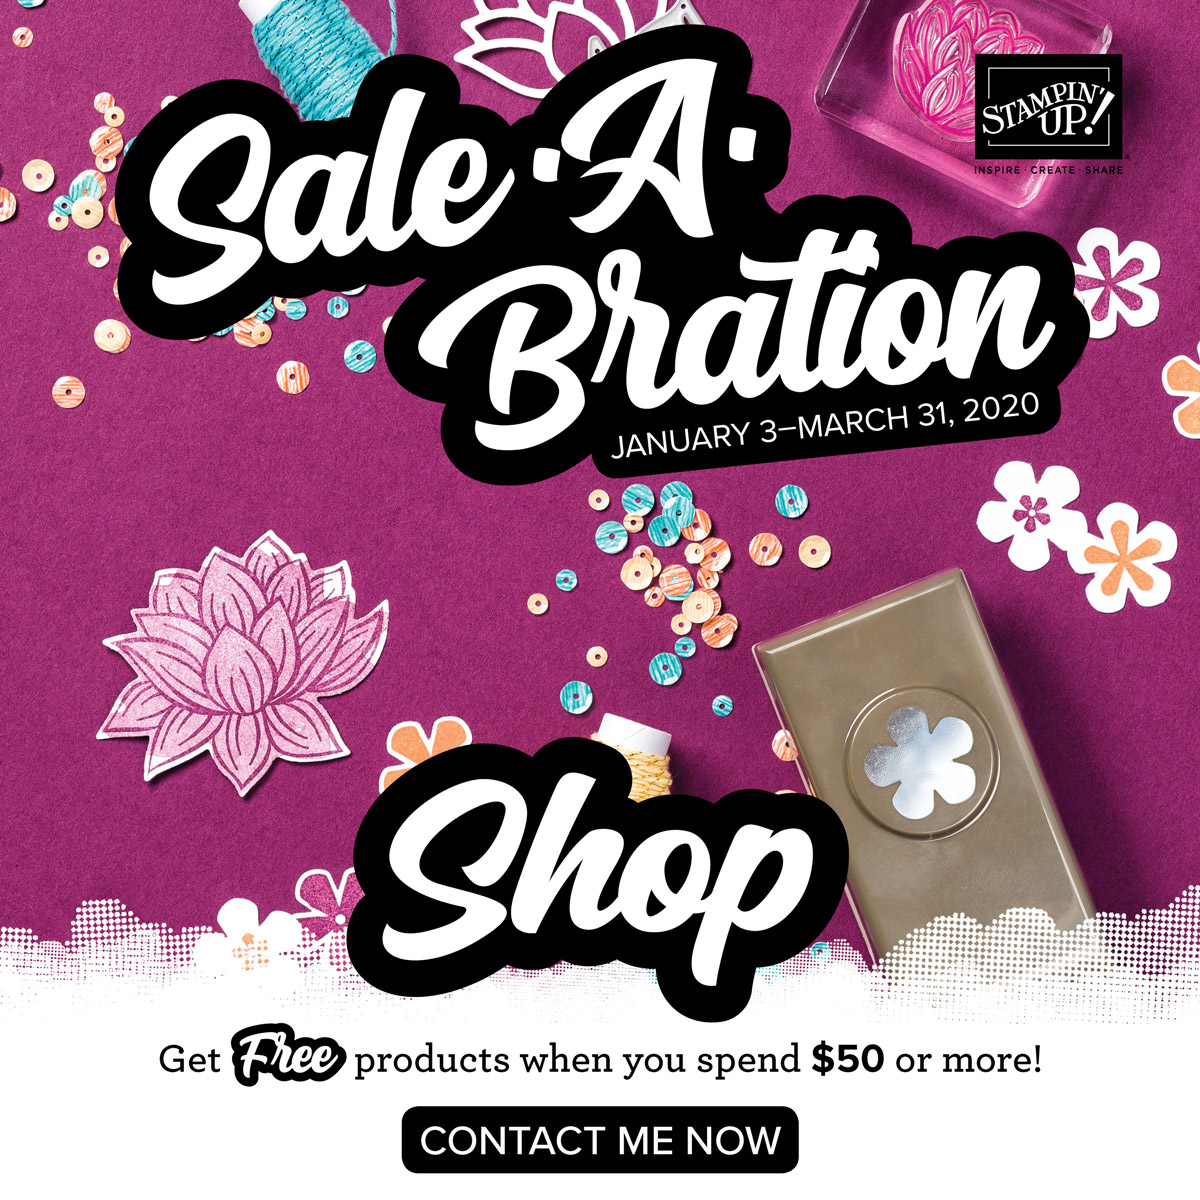 Beginning January 3, 2020 with a min. $50.00 order you can choose 1 item from the Sale-a-bration Brochure for FREE. Details on my blog here: https://wp.me/p59VWq-aGh